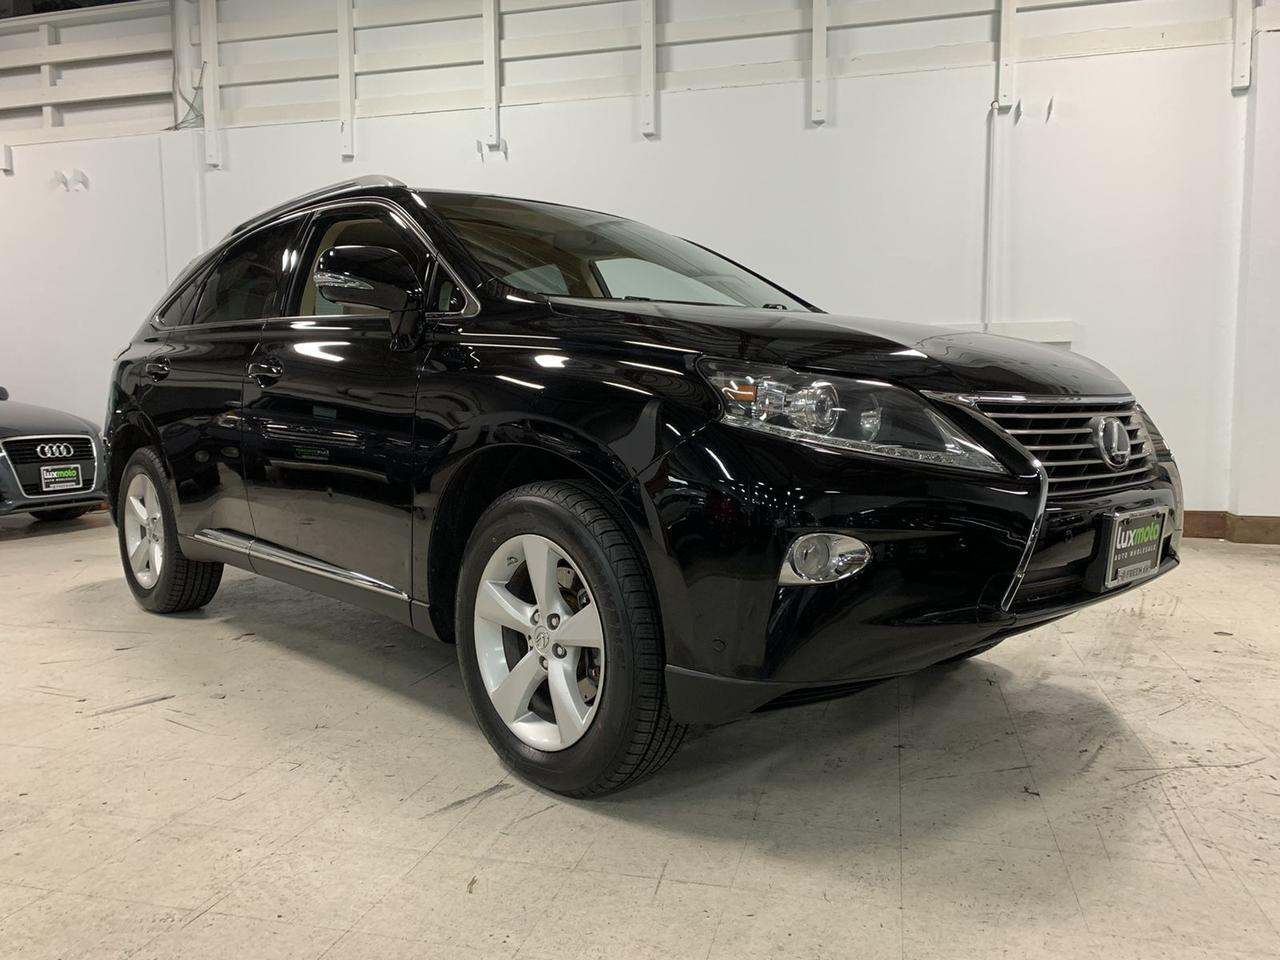 2014 Lexus RX 350 AWD 33k Miles Back-Up Cam Nav Htd & Cooled Seats Portland OR